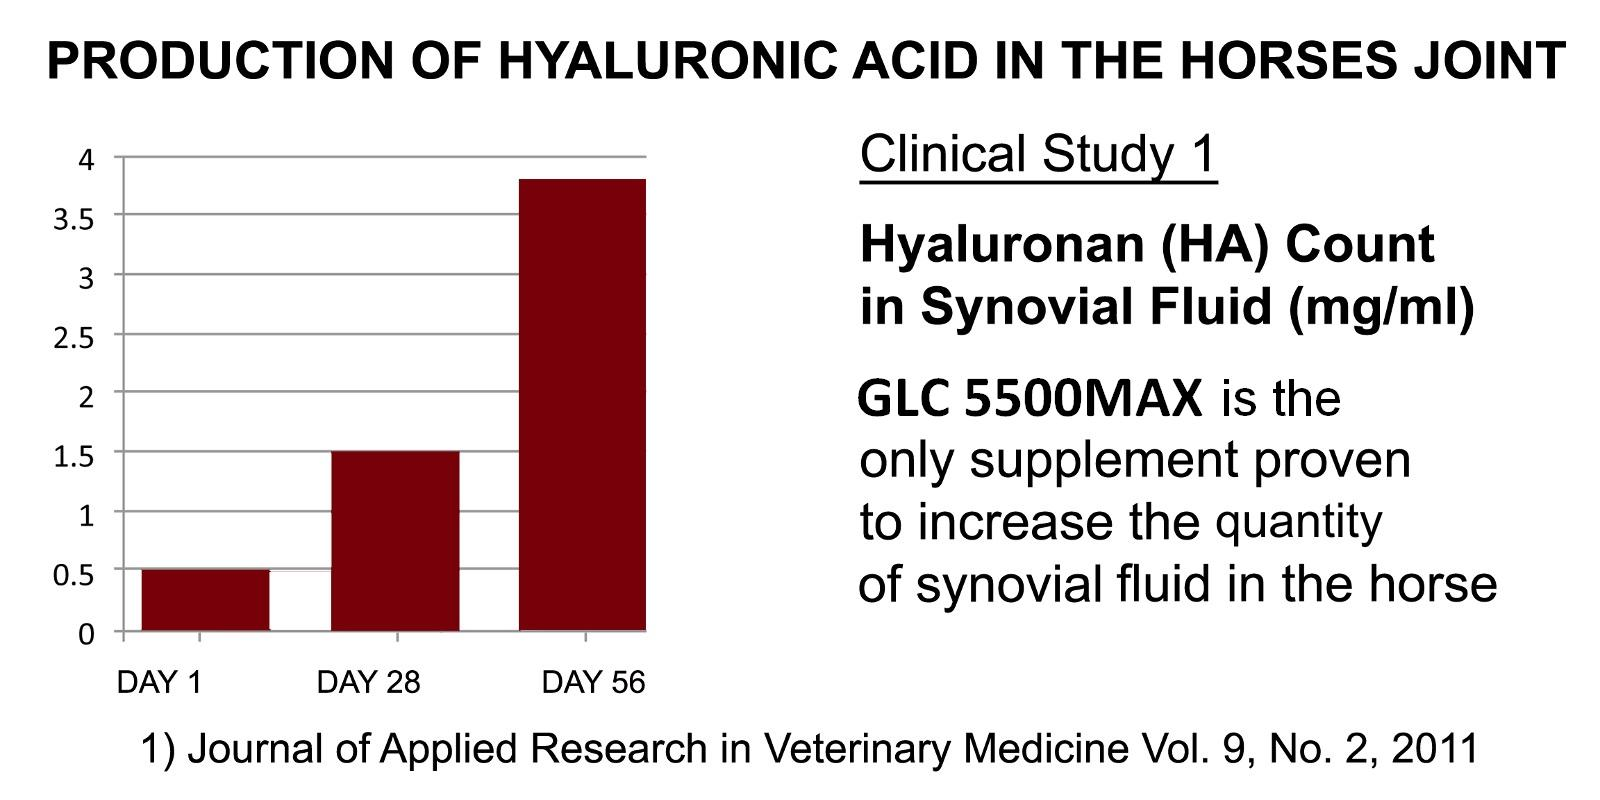 GLC5500MAX-HA count-clinical study